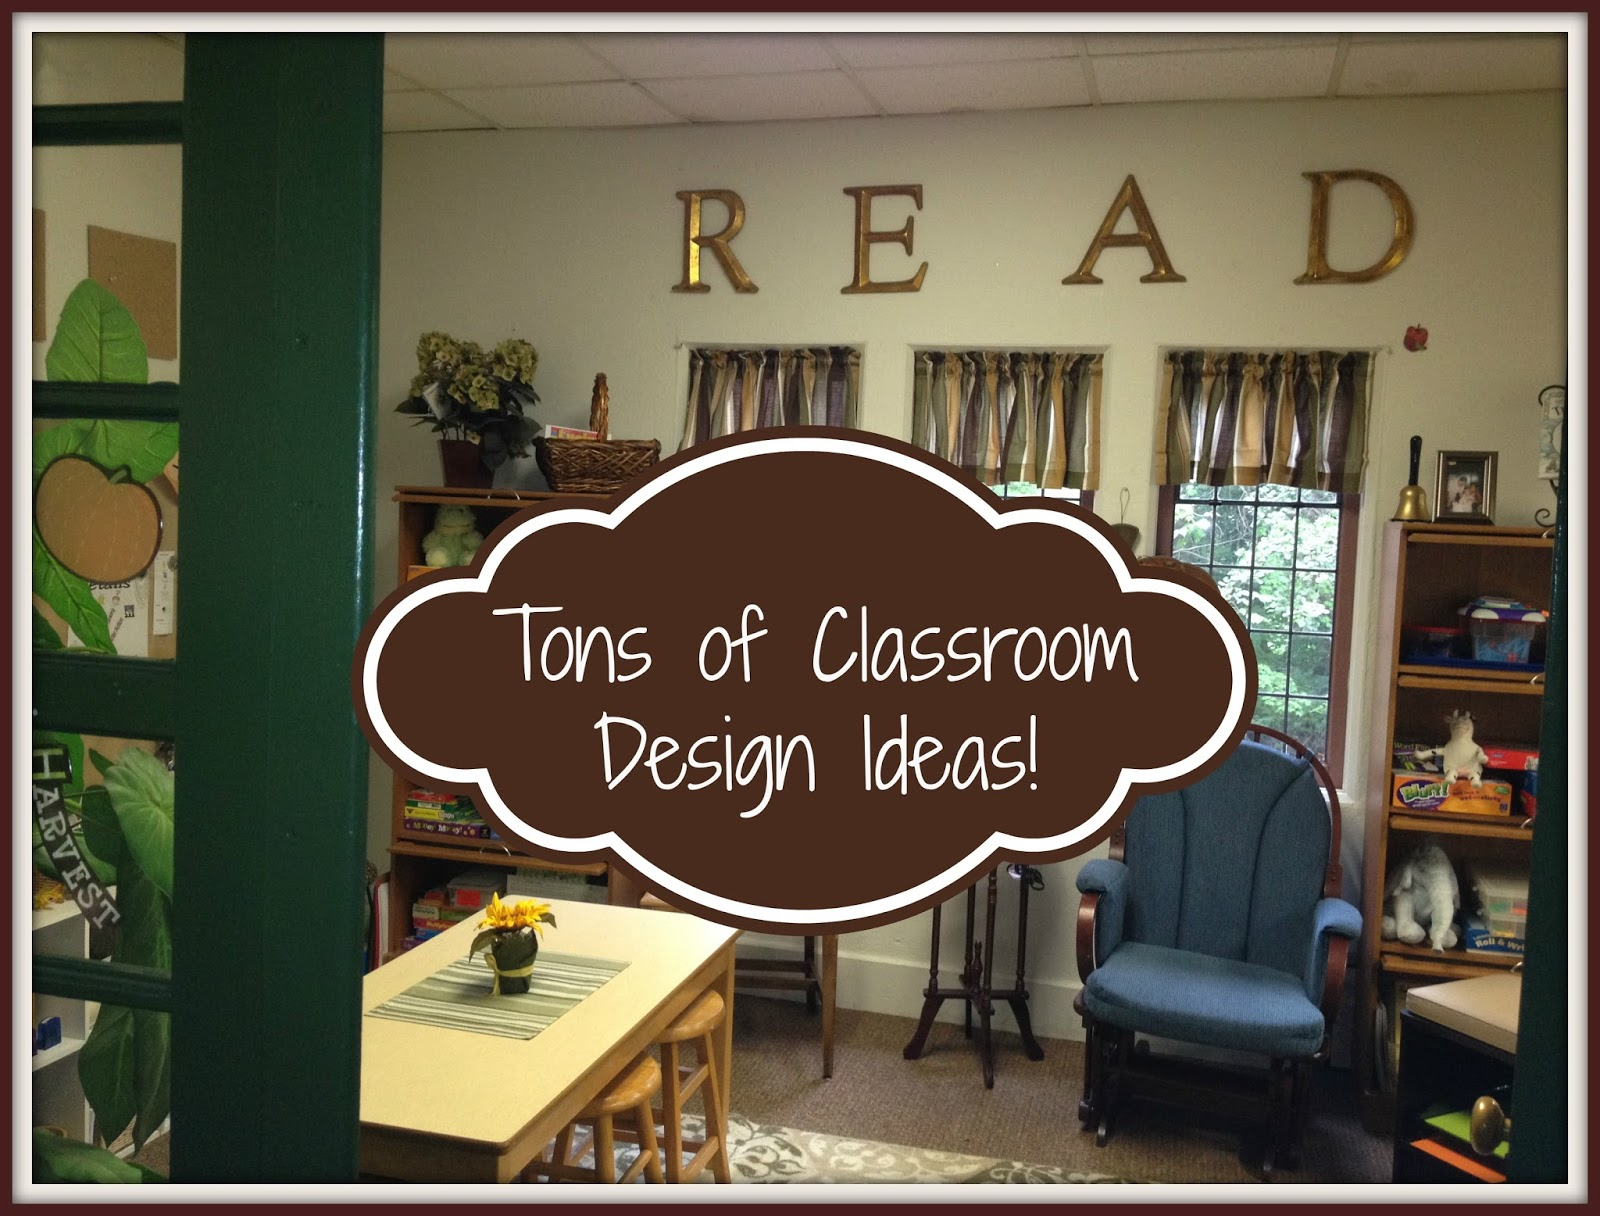 Pictures Of Classroom Design Ideas ~ Tons of classroom design ideas for setting up your cozy